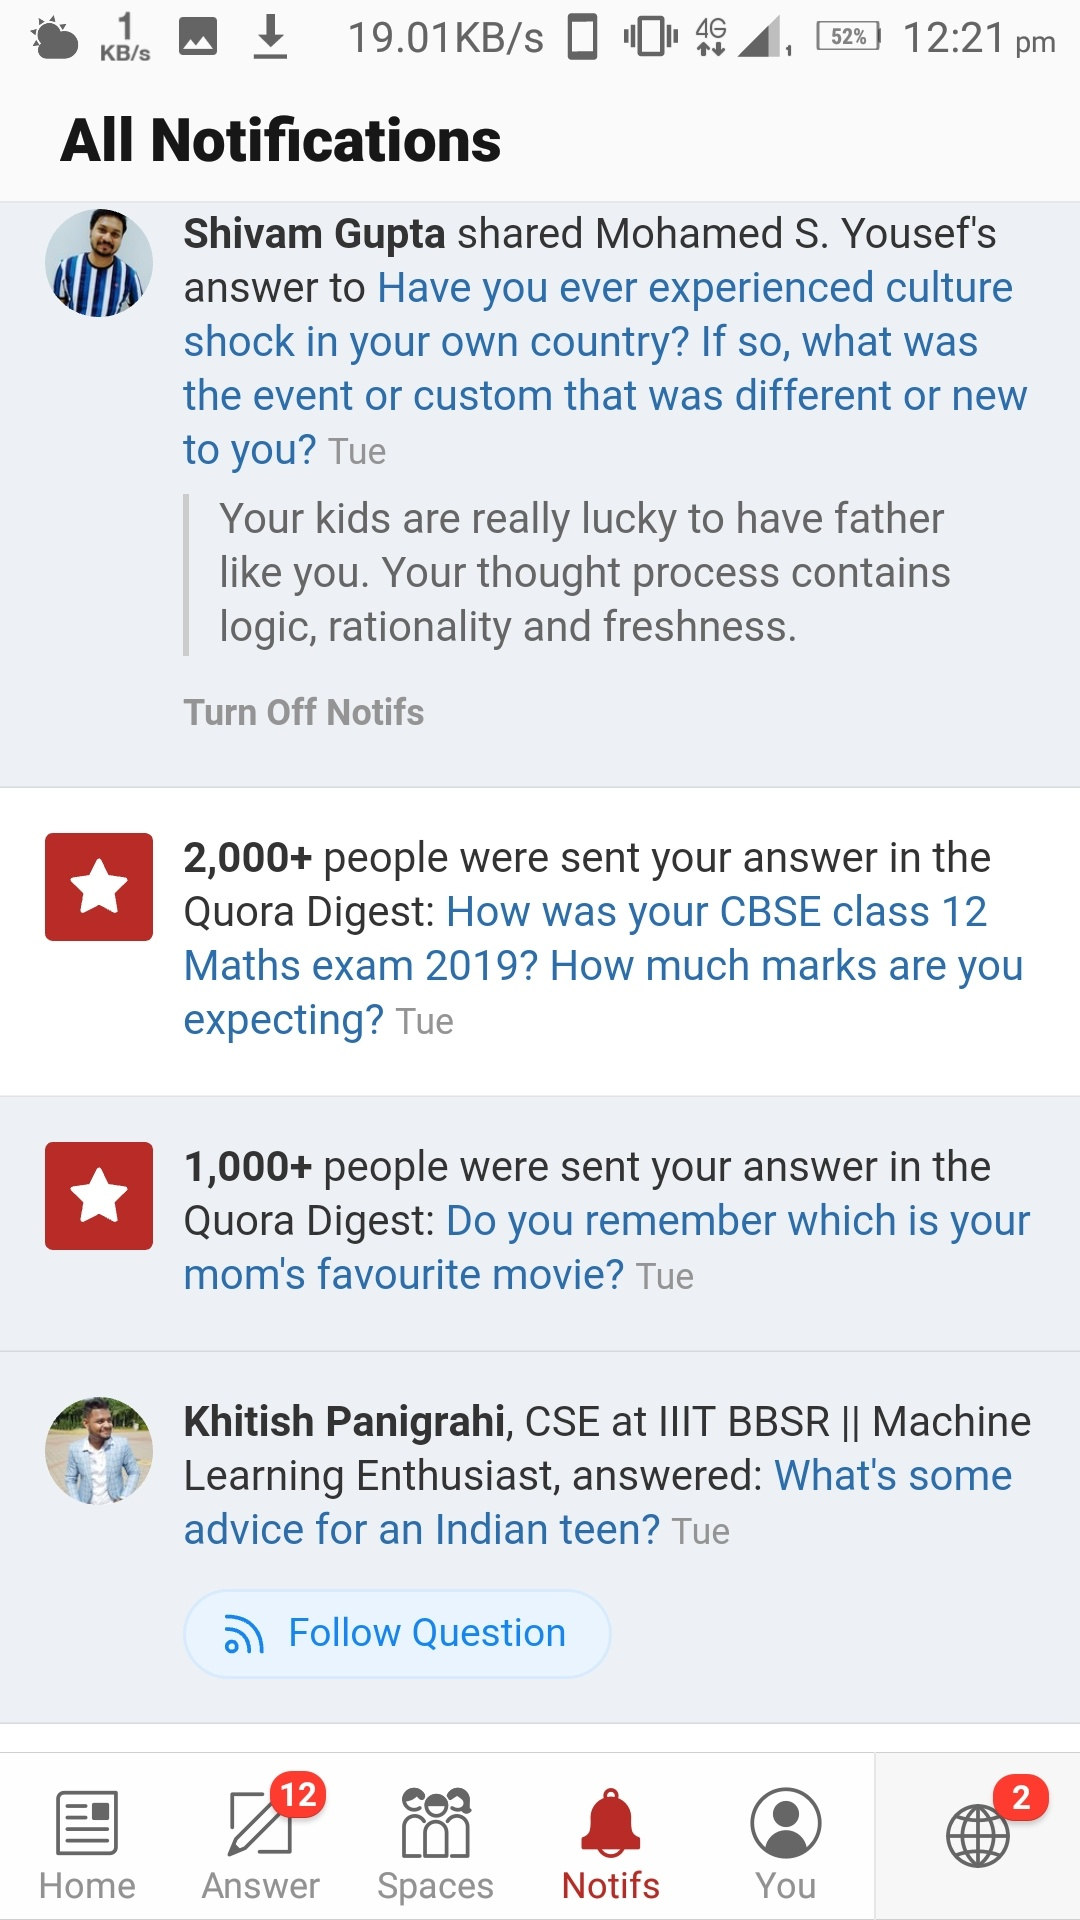 How often are people's answers sent to the Quora digest? - Quora